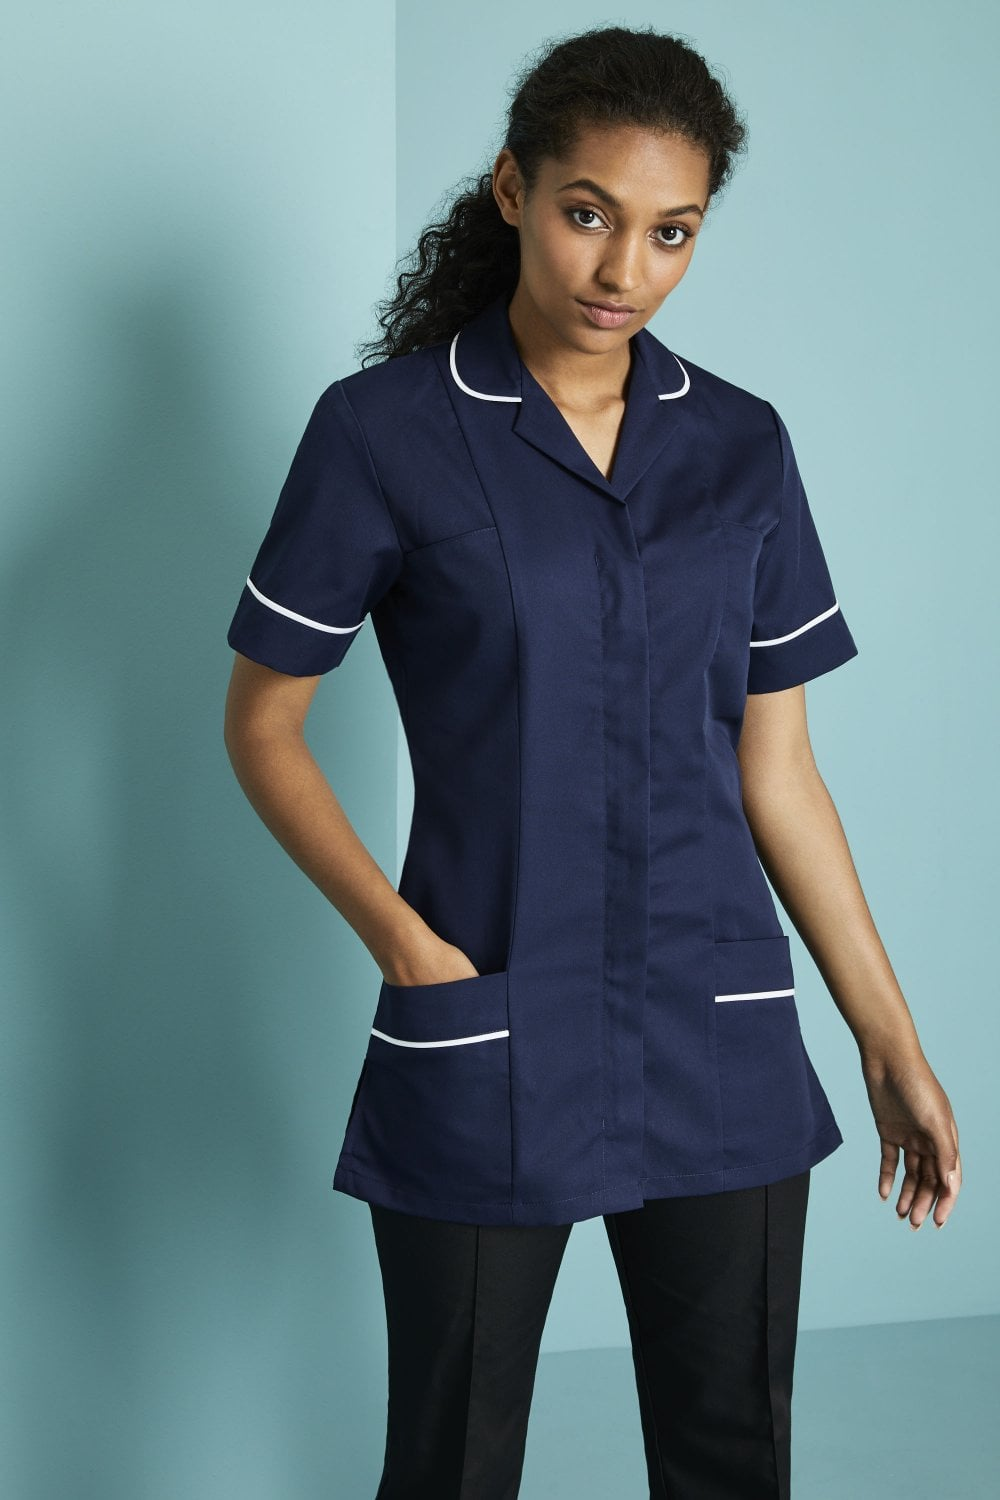 40b7cde4efe66 Essentials Women's Classic Hospital Blue Healthcare tunic With White Trim